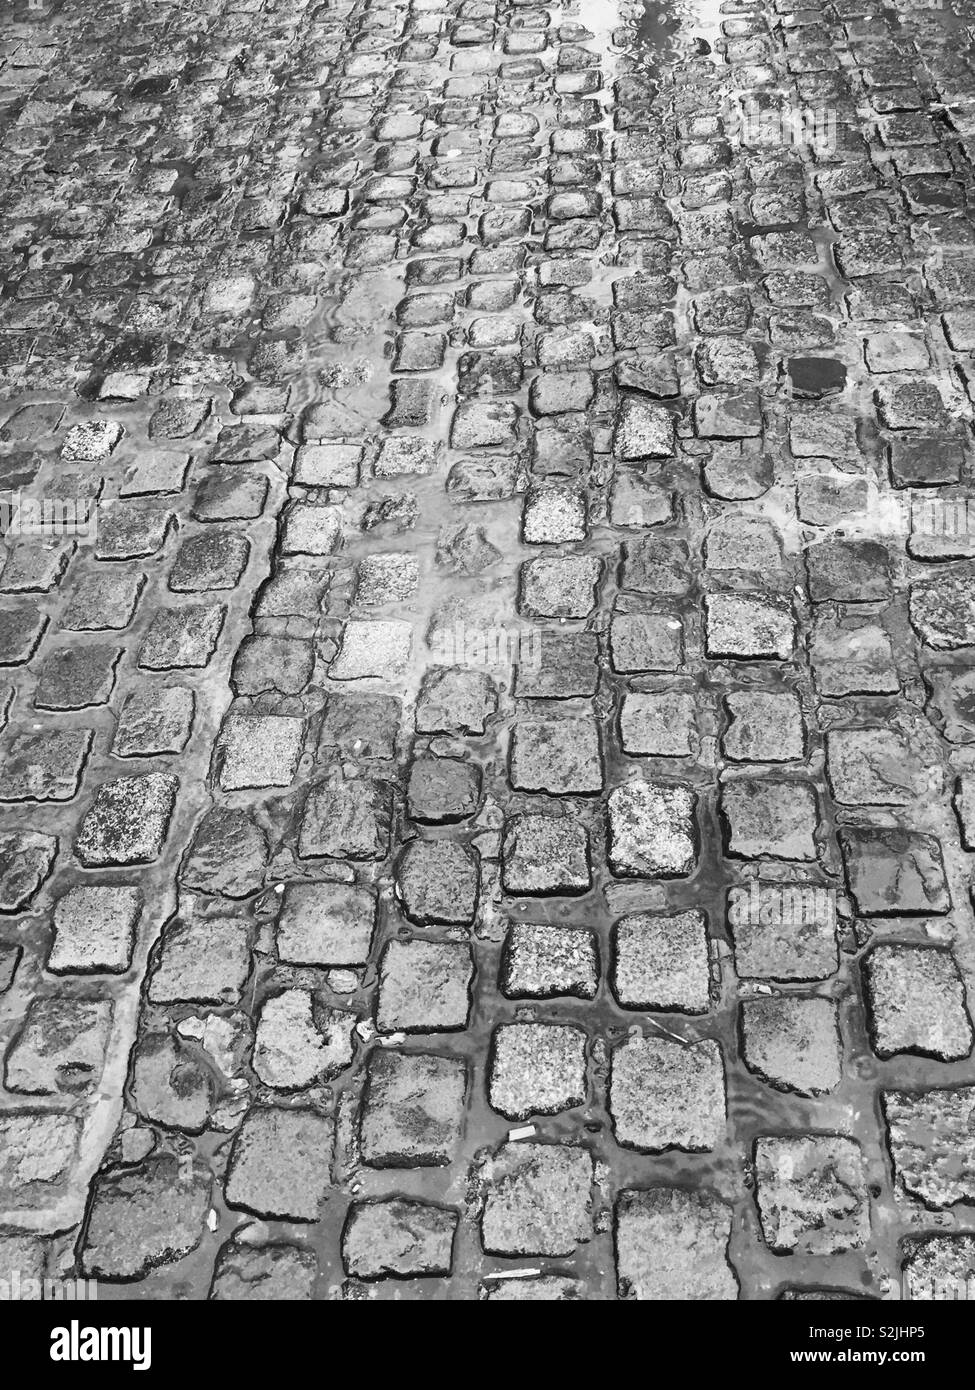 Wet and damp cobblestones on a rainy day.  Rain pouring down on the roads and streets of the ground. Cobbles soaked with rain.  Murky weather - Stock Image